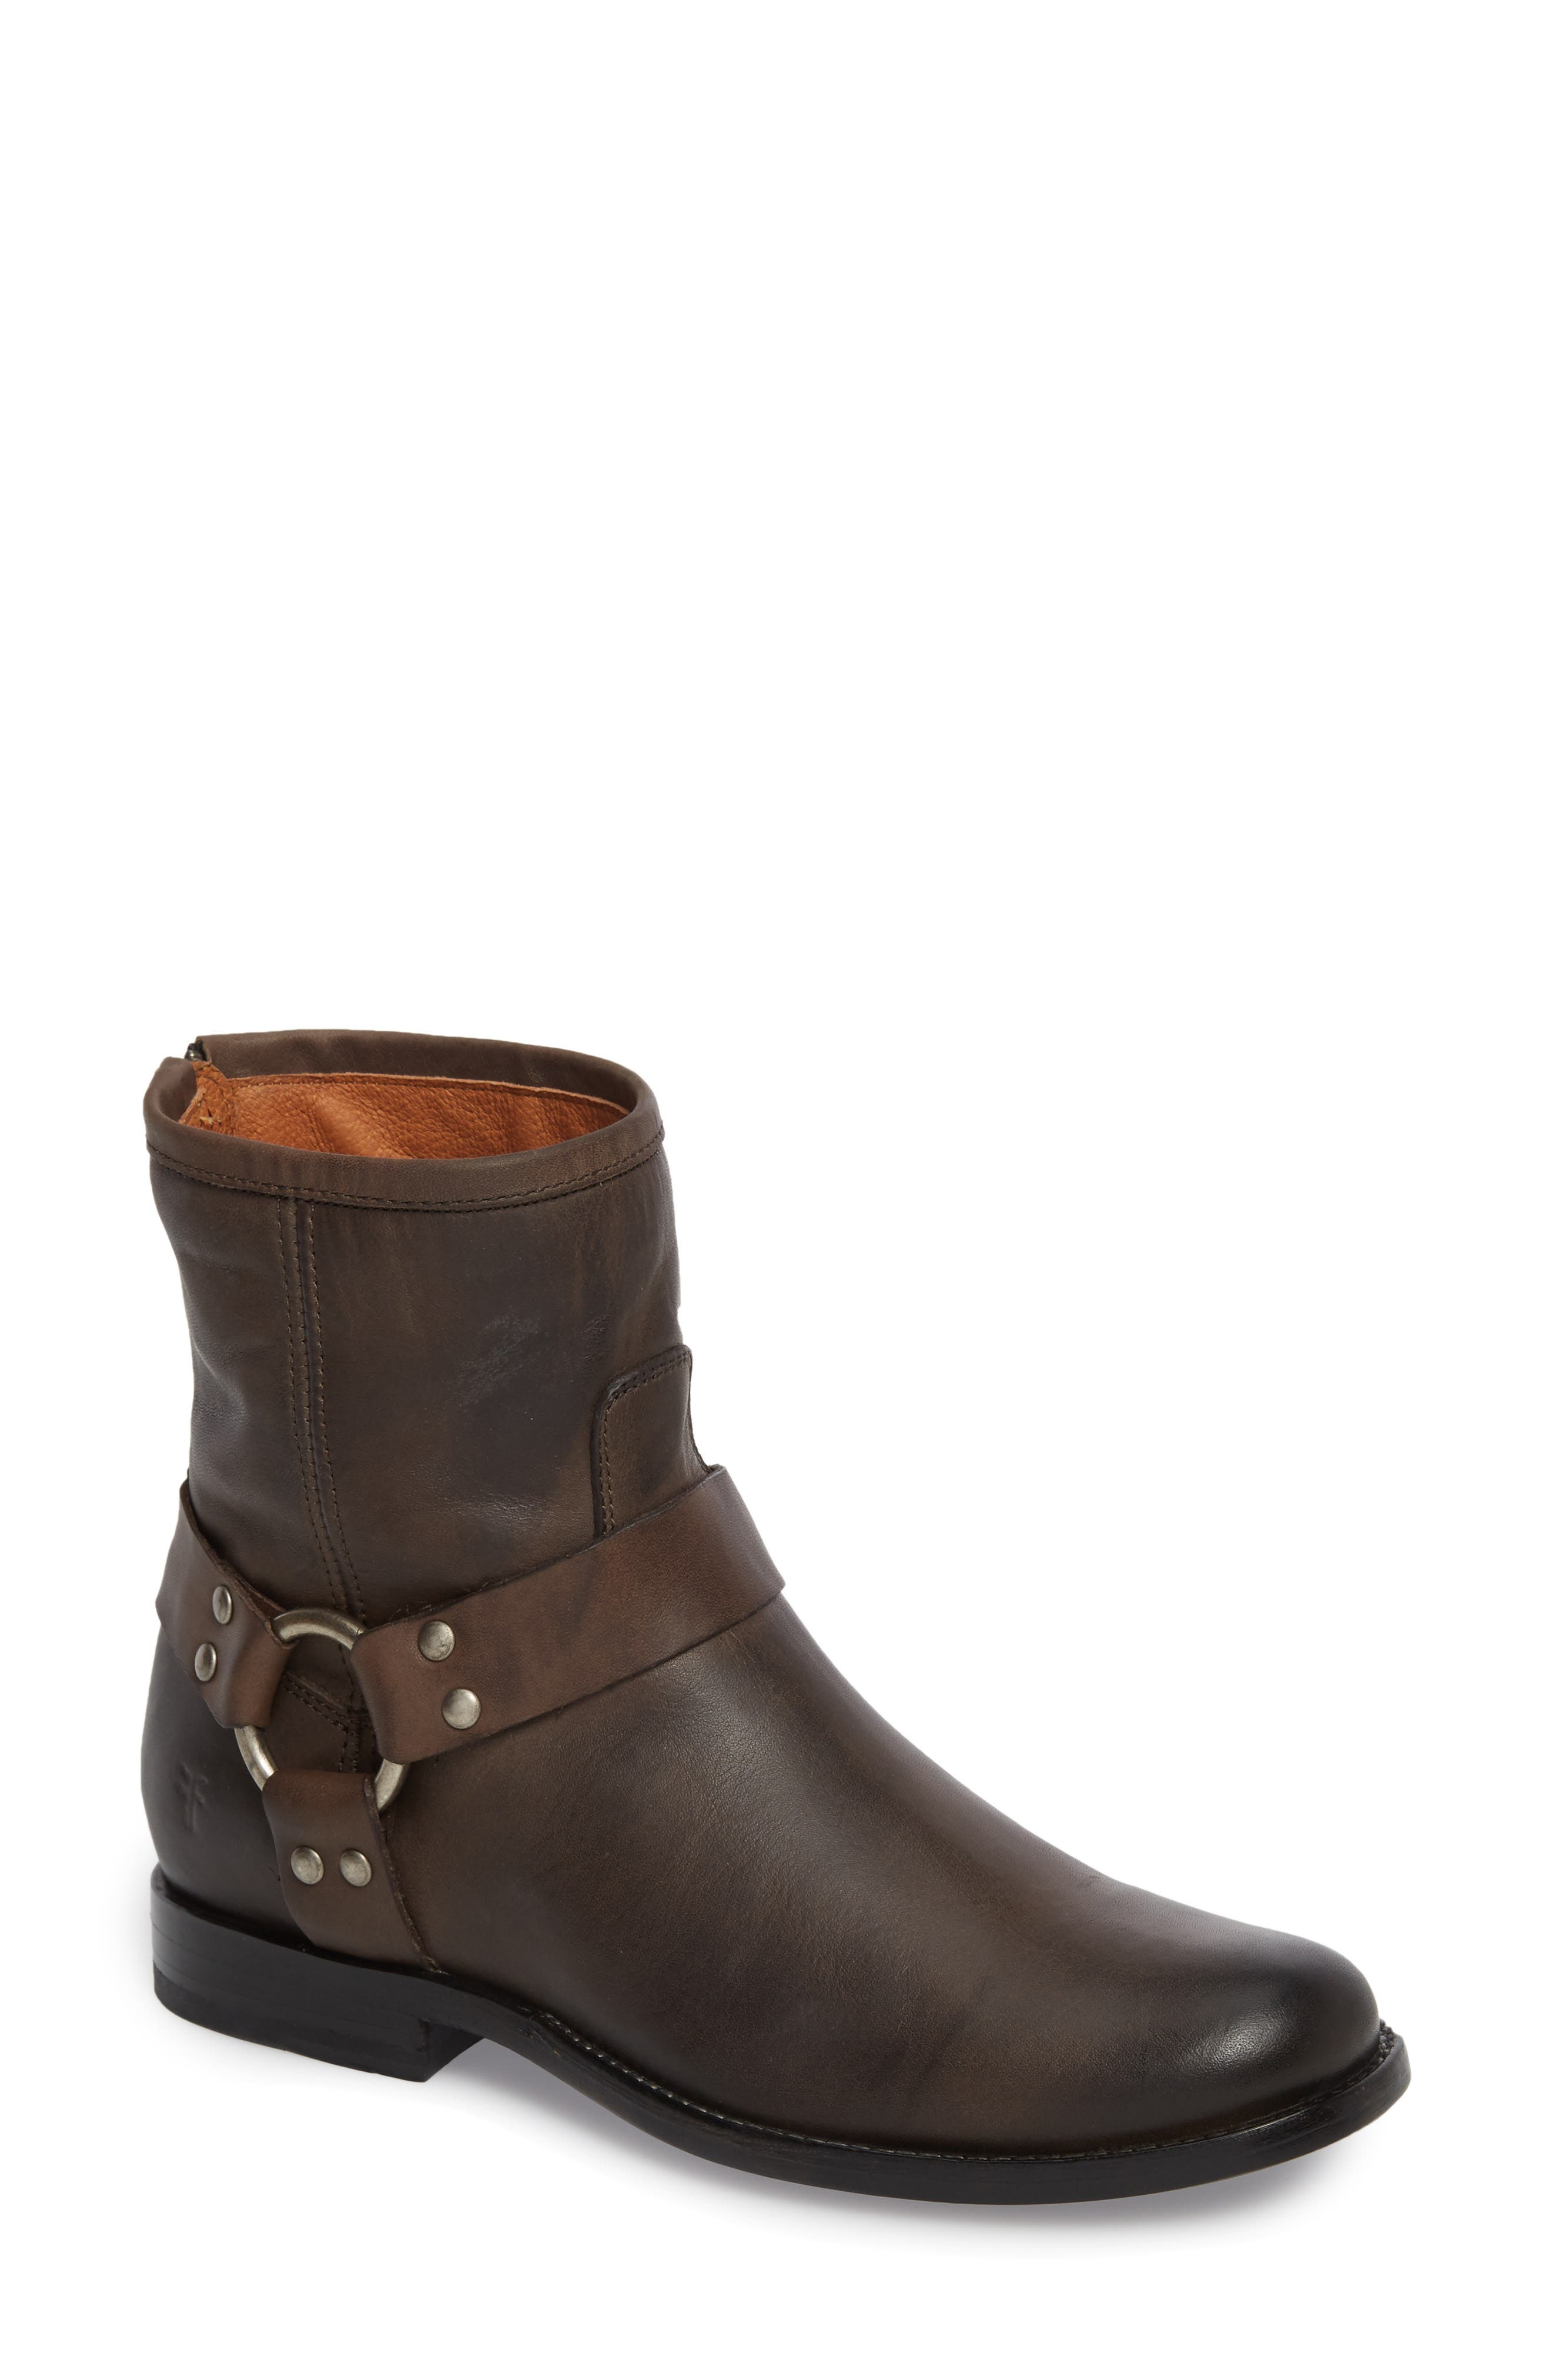 Phillip Harness Boot,                         Main,                         color, Smoke Leather